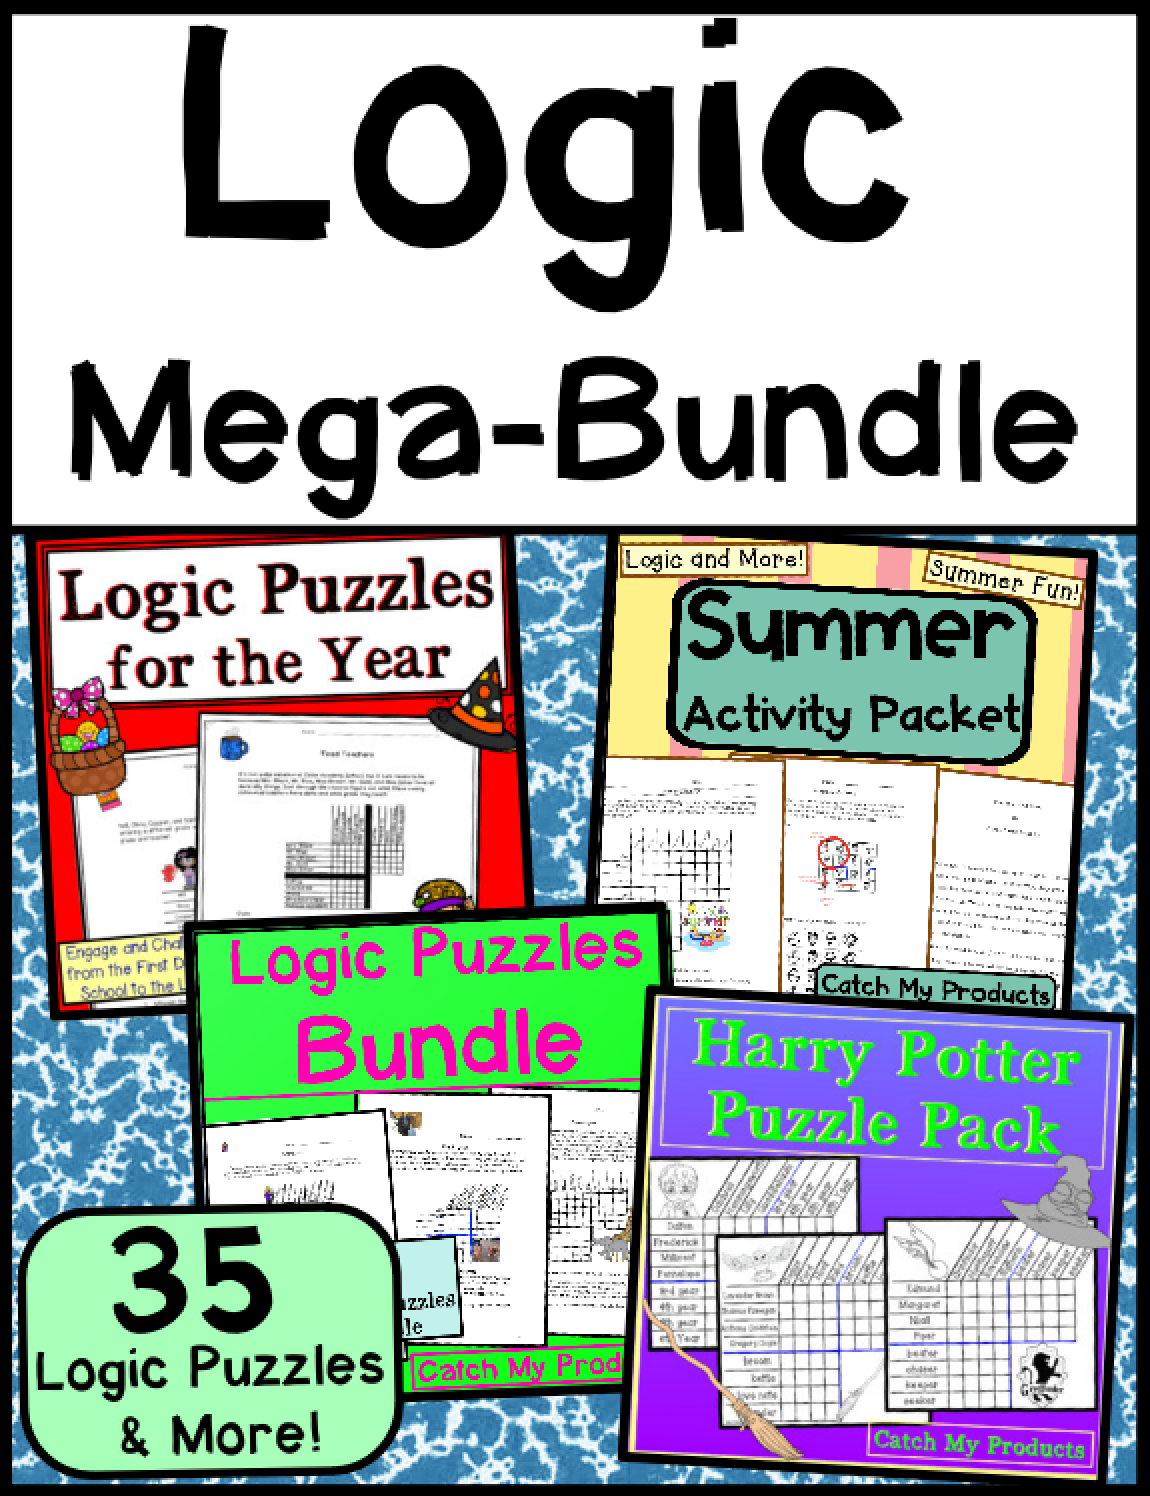 Printable Logic Puzzle Worksheets For Kids Will Provide